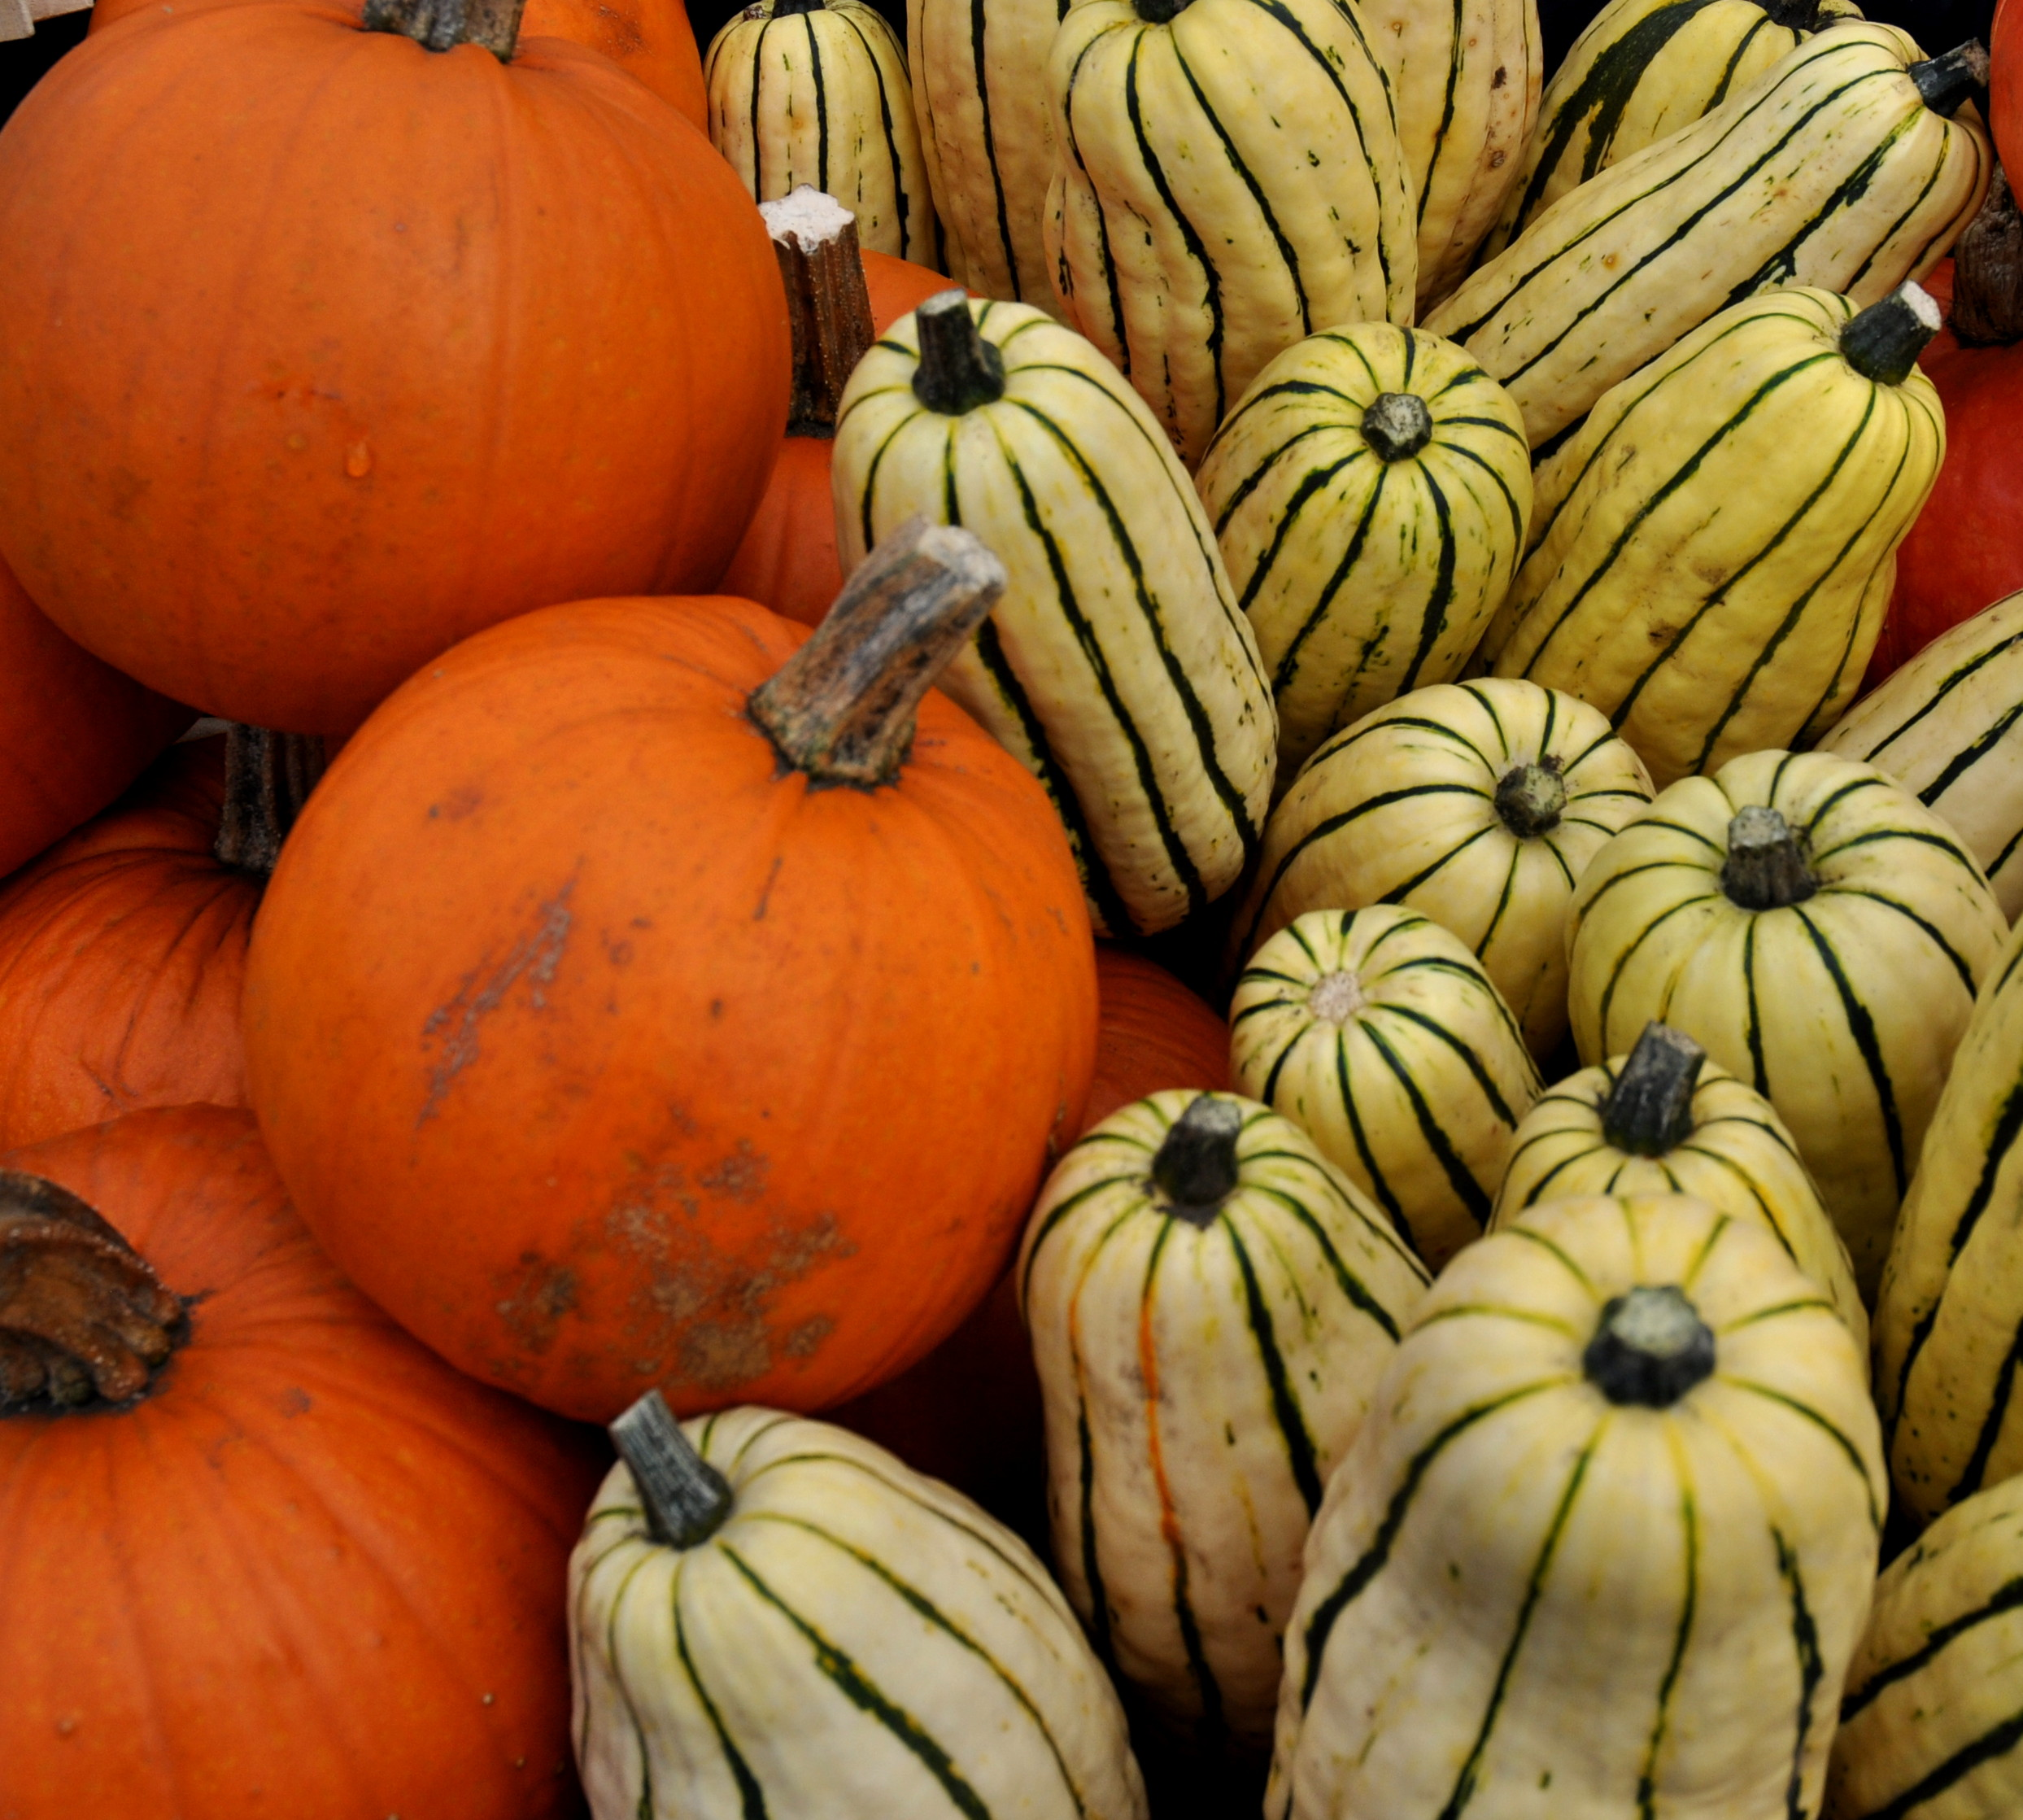 Sugar Pie pumpkins and delicata squash from Kirsop Farm at Ballard Farmers Market. Copyright Zachary D. Lyons.